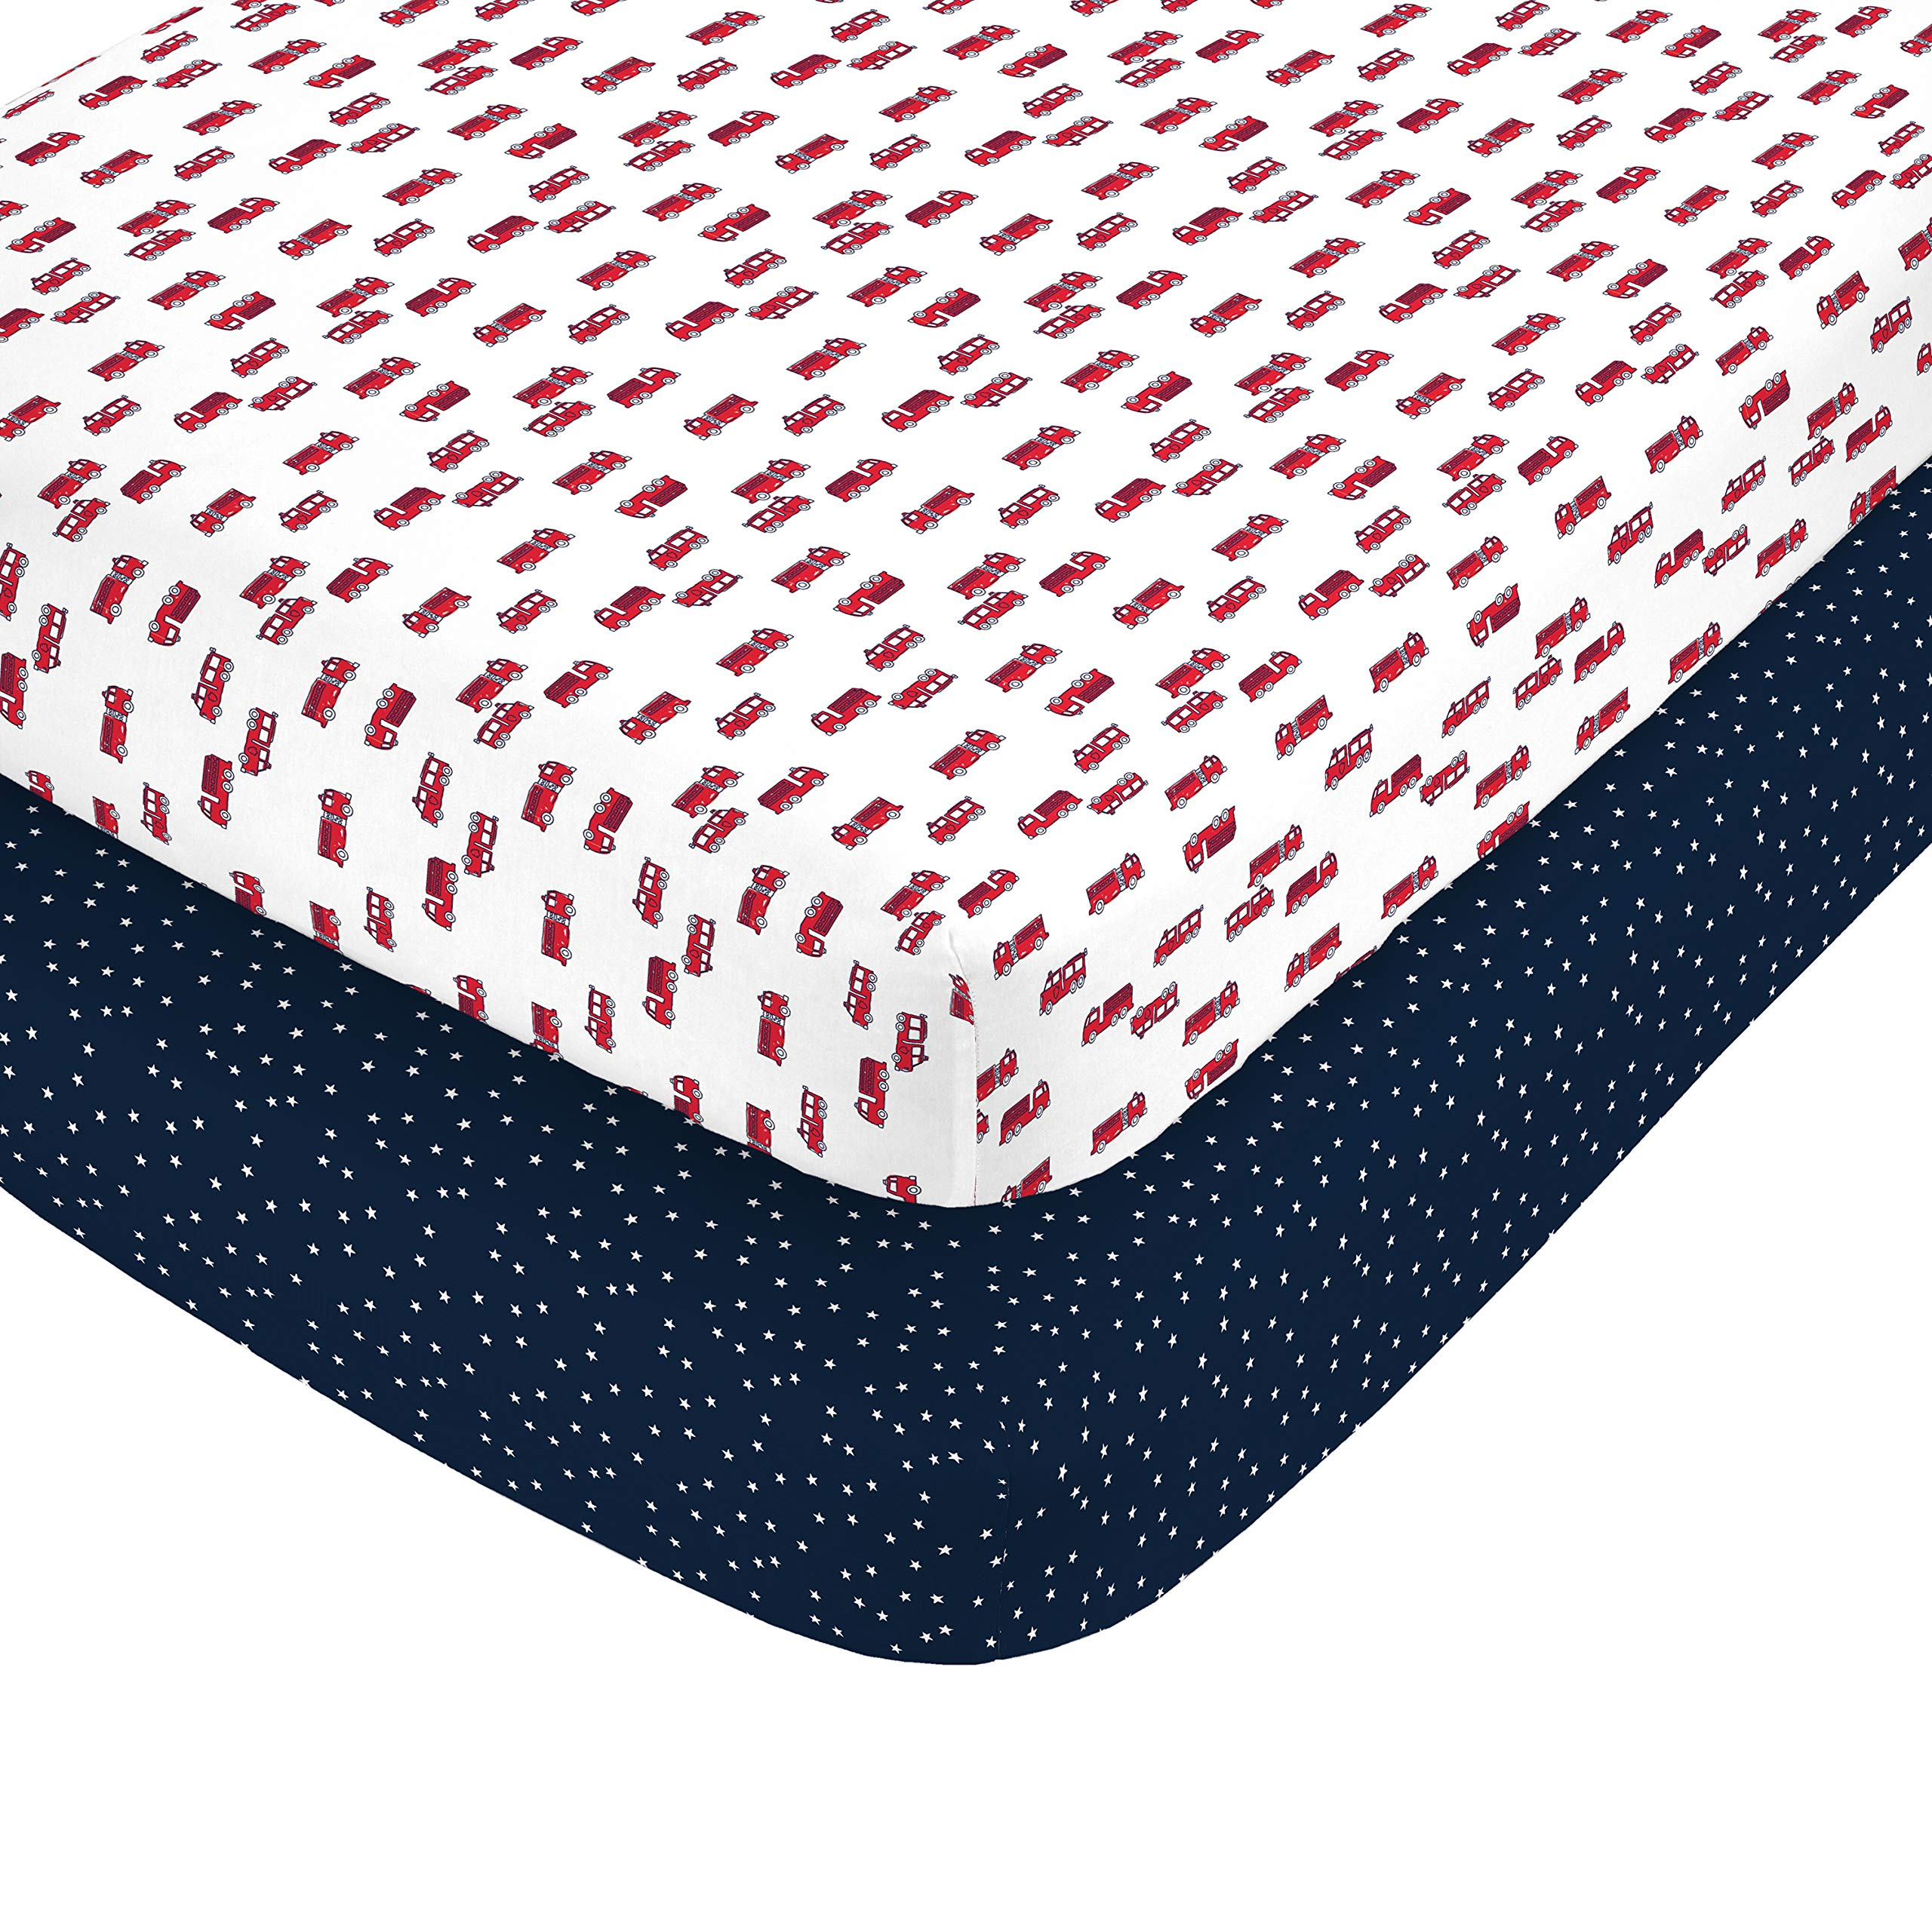 Carter's 100% Cotton Sateen 2 Piece Fitted Crib Sheets, Red/White/Navy by Carter's